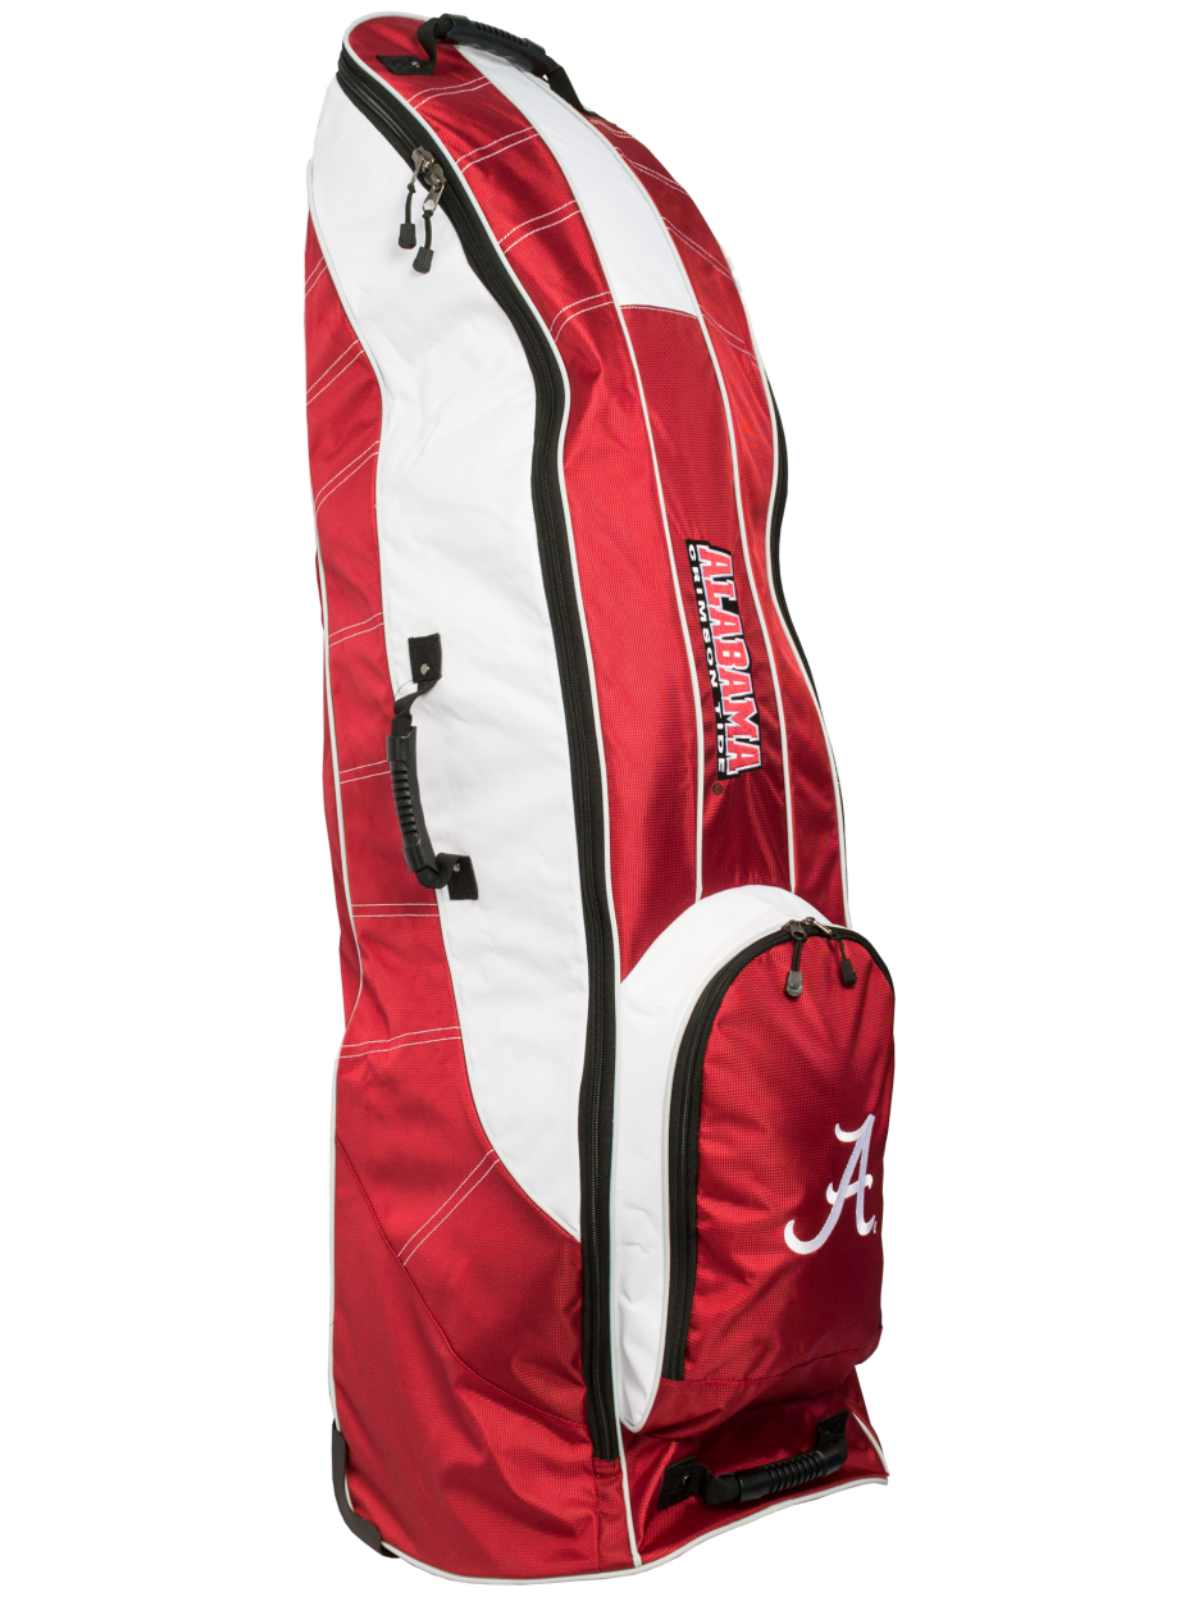 Click here to buy Alabama Crimson Tide Team Golf Red Golf Clubs Wheeled Luggage Travel Bag.